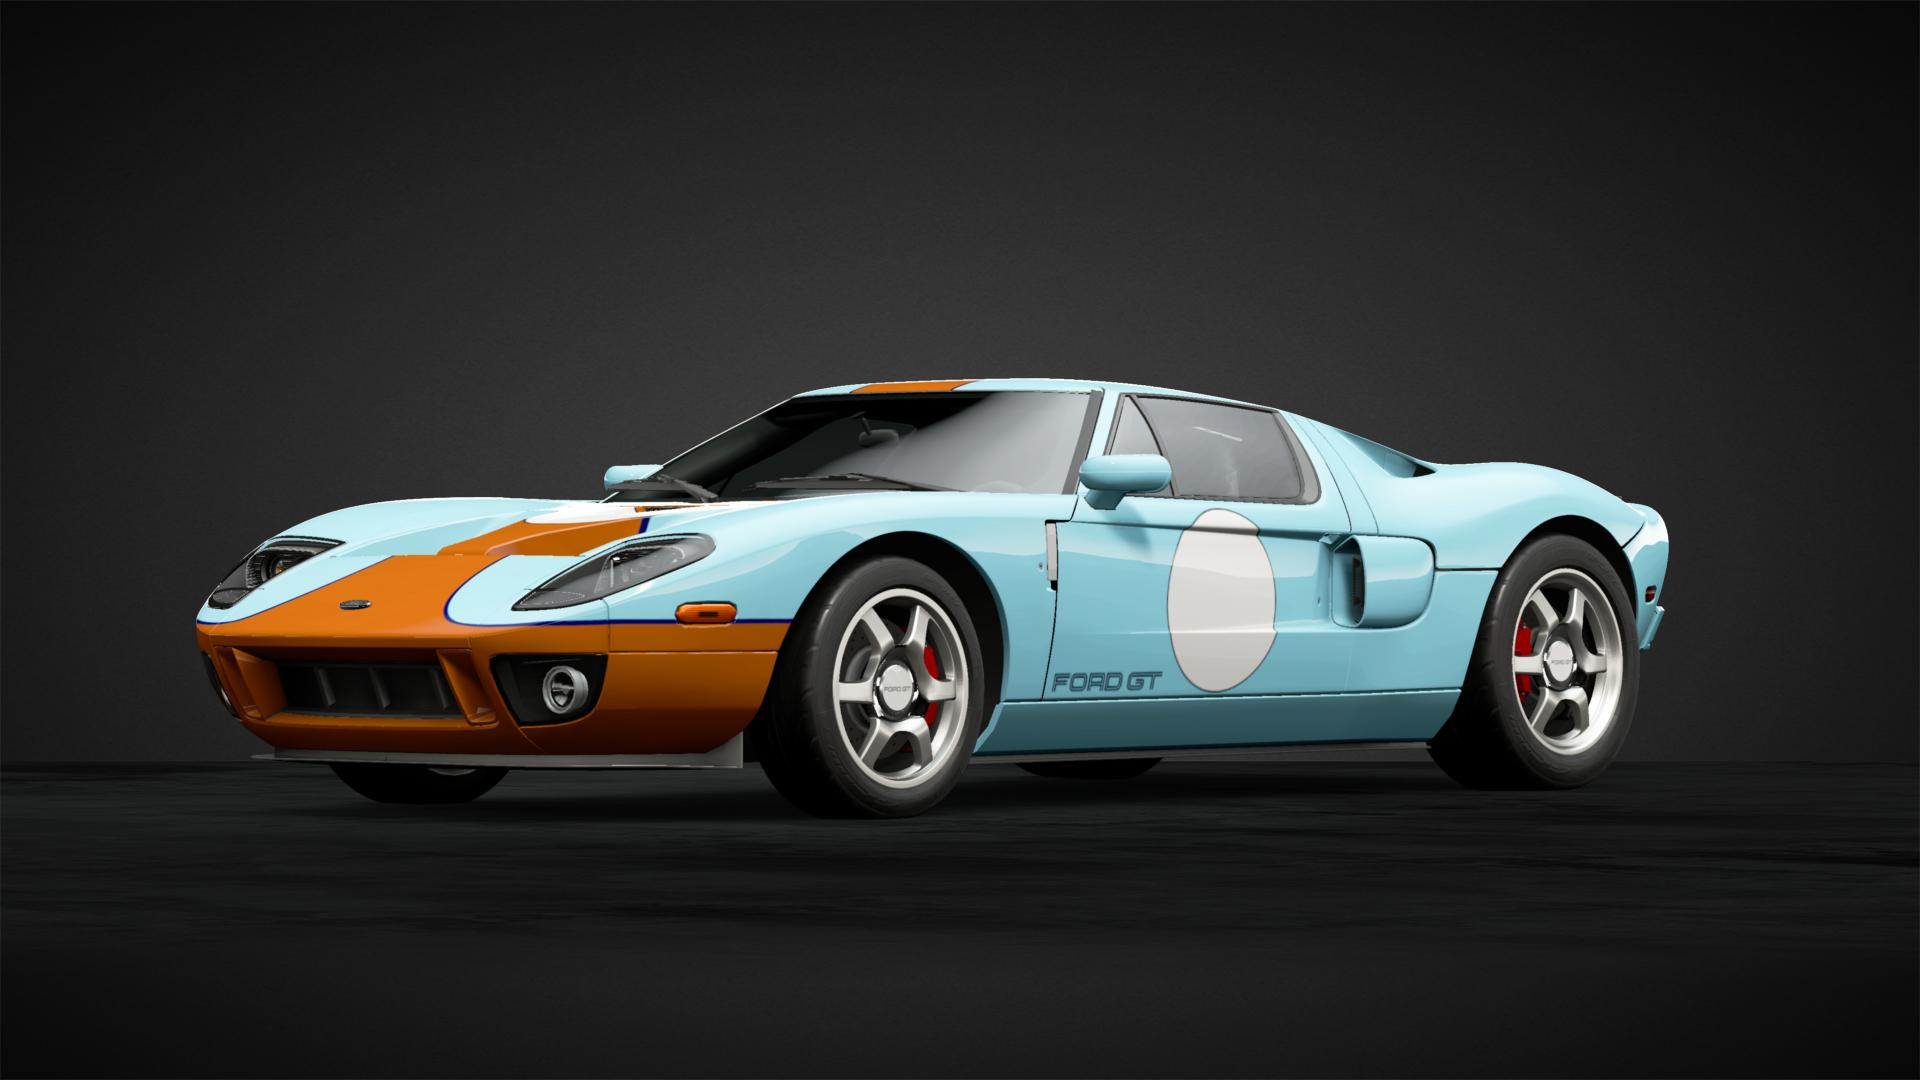 Gulf Ford Gt Heritage Car Livery By Mercedes Benzclk Community Gran Turismo Sport